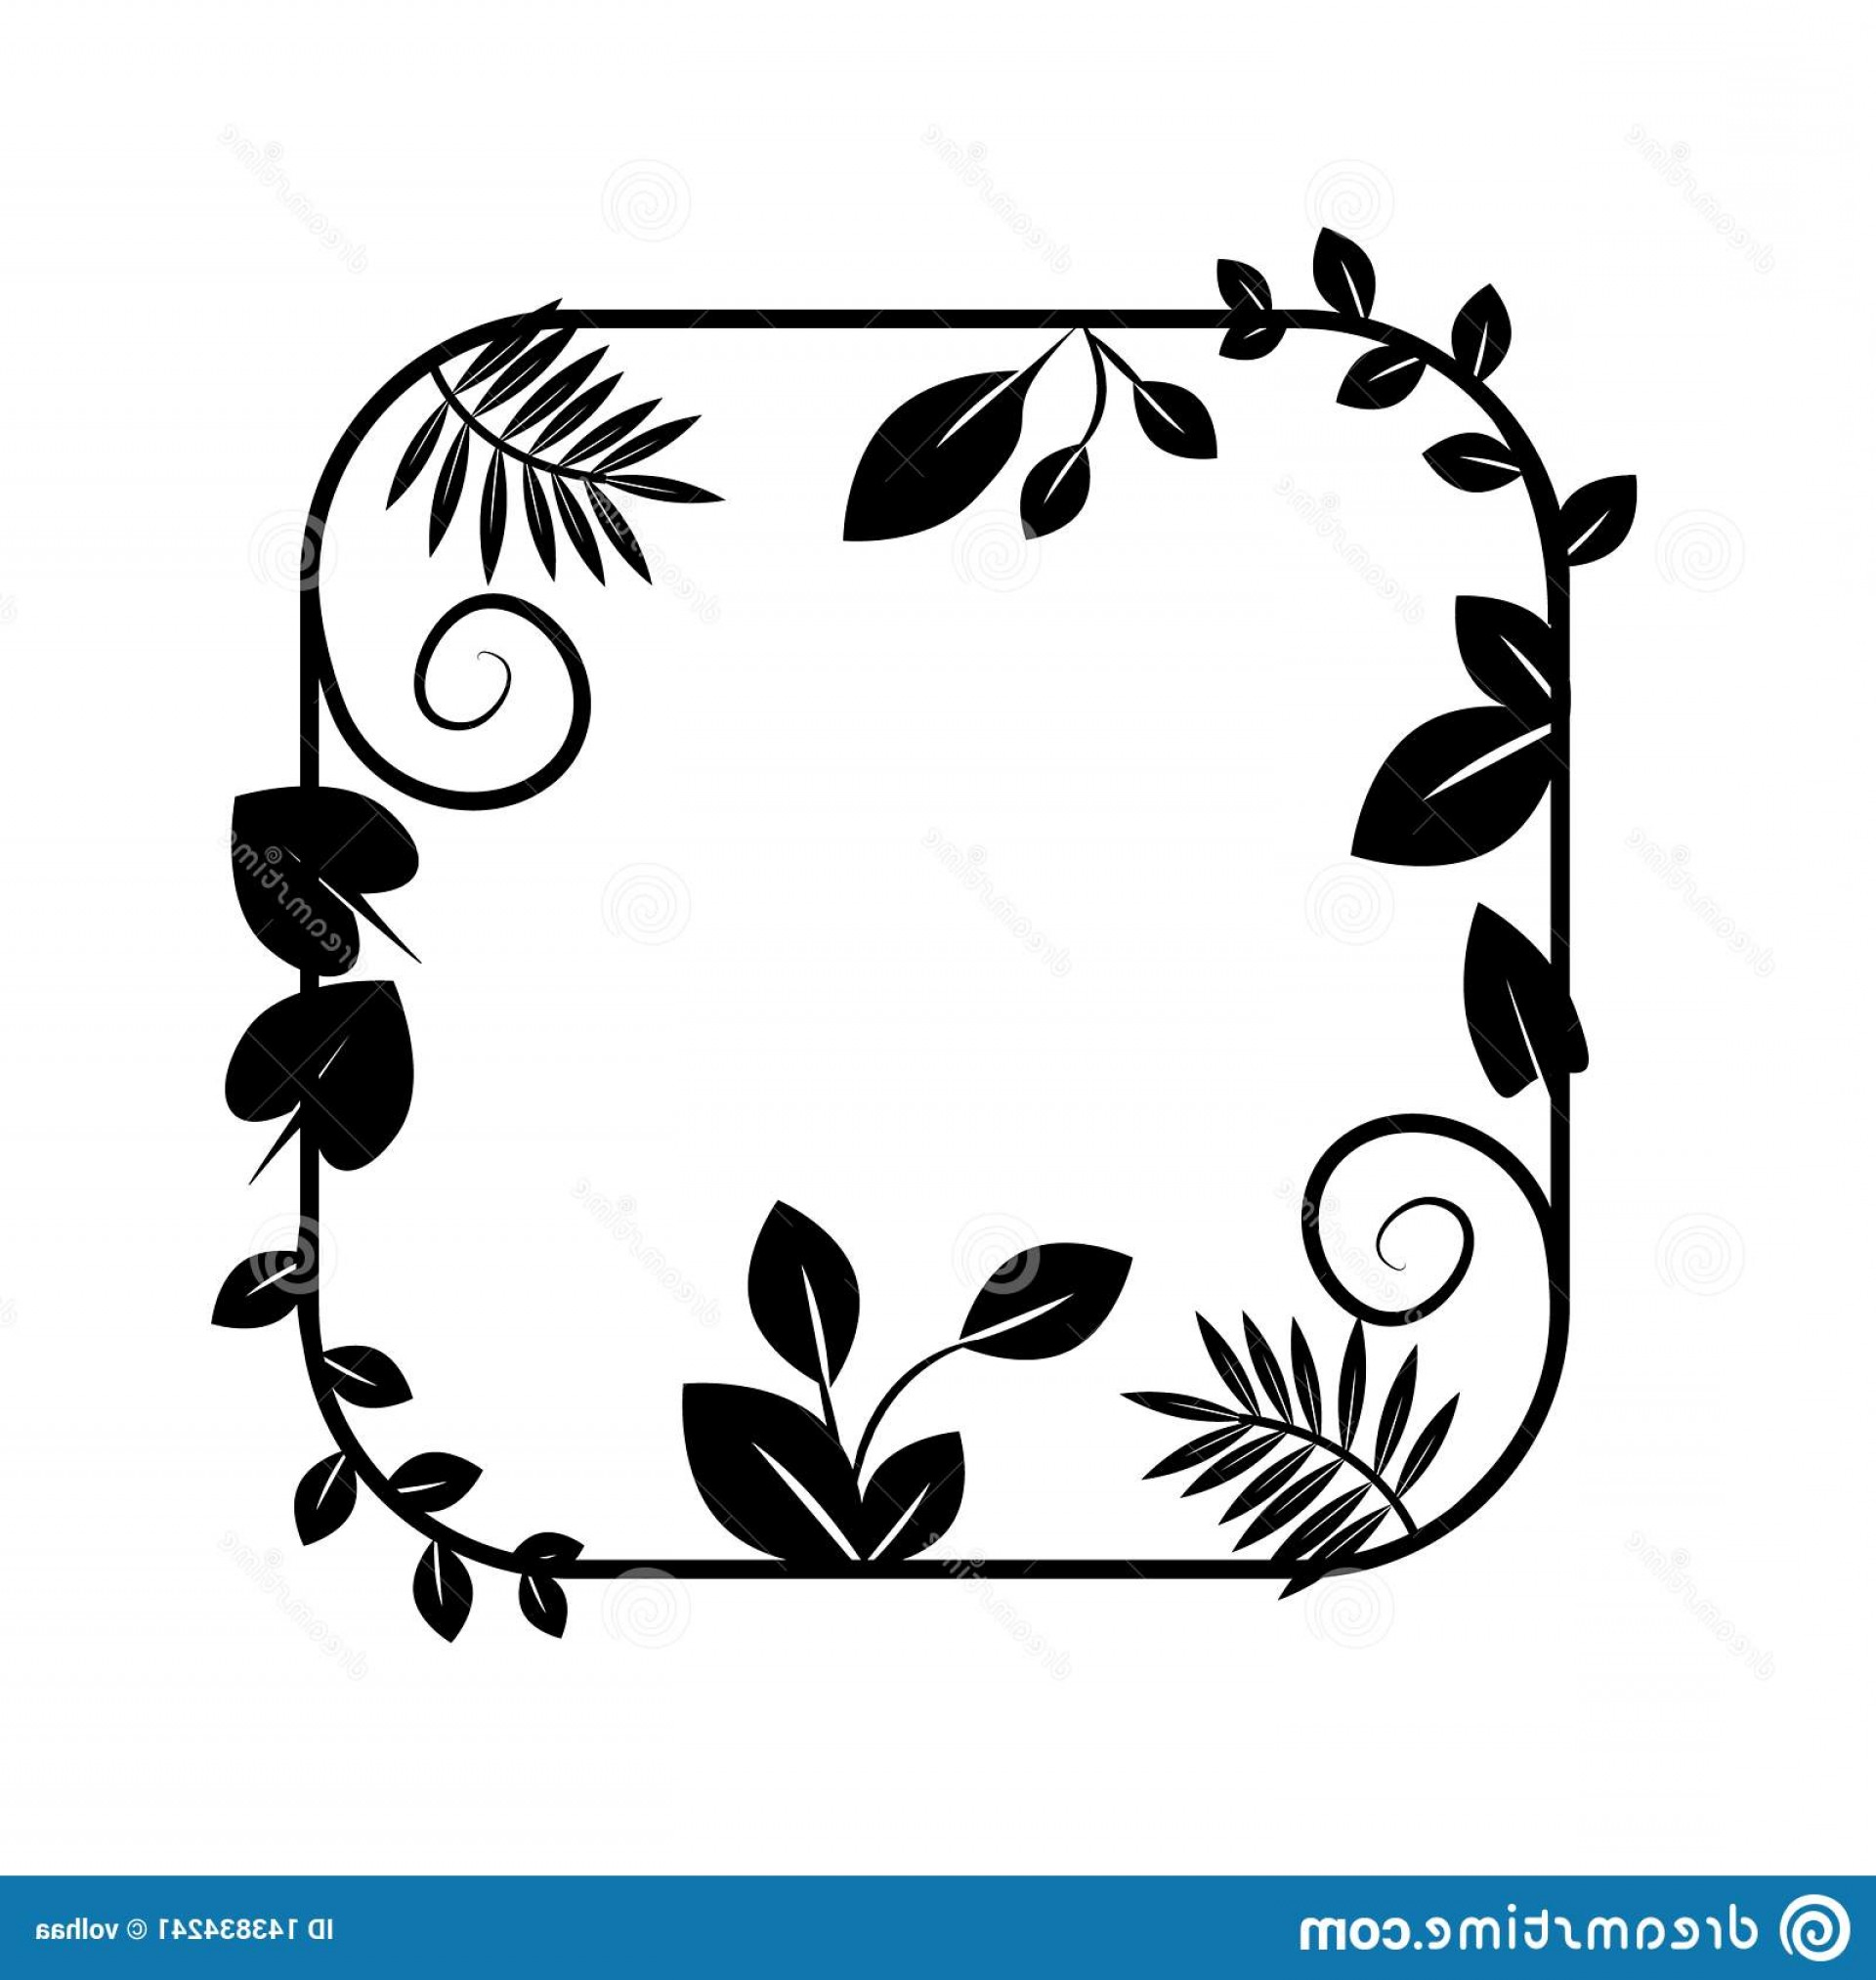 Floral Vector Icon: Floral Frame Vector Icon Border Plant Wreath Herbal Flowers Flora Plants Green Growth Leaf Leaves Foliage Herbarium Eco Ecology Image